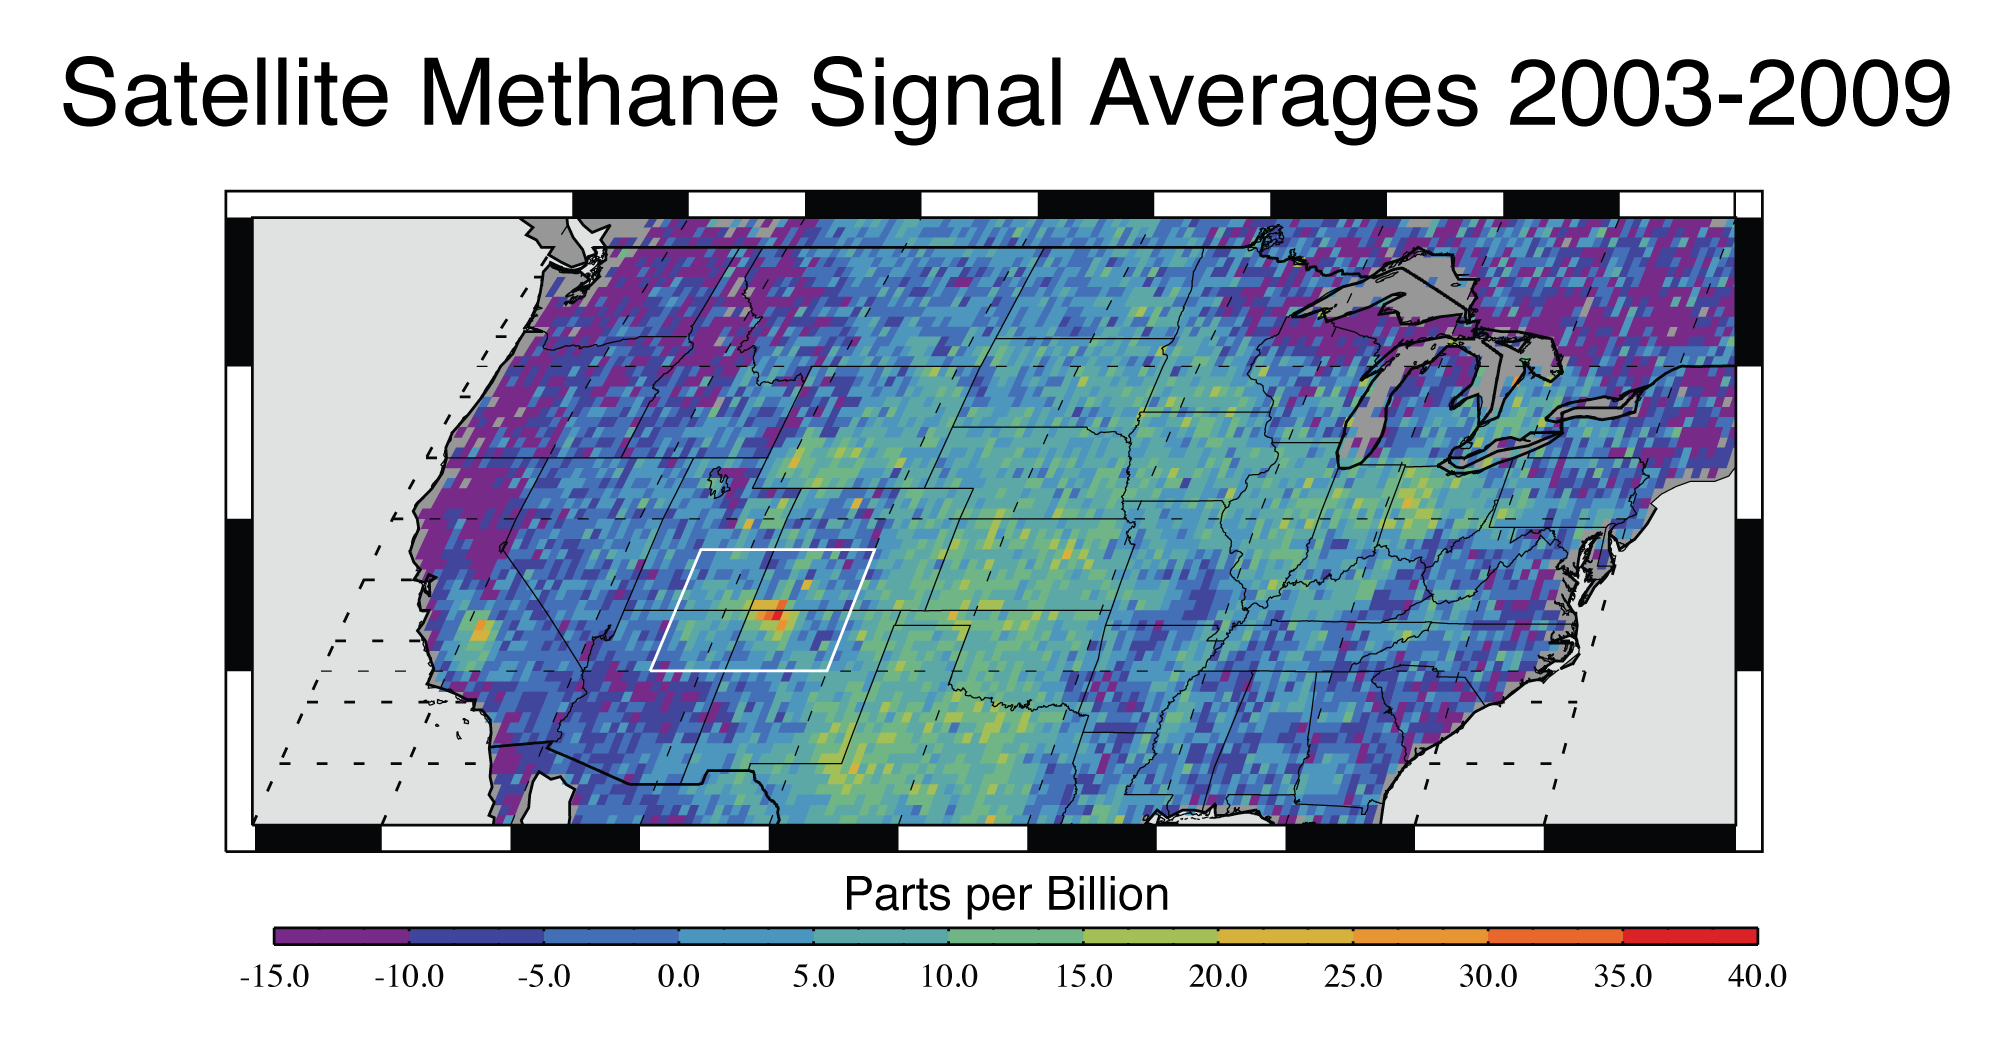 This map shows anomalous U.S. methane emissions (that is, how much the emissions are higher or lower than average) for 2003-2009, as measured by SCIAMACHY. Purple and dark blue areas are below average. Pale blue and green areas are close to normal or slightly elevated. Yellows and red indicate higher-than-normal anomalies, with more intense colors showing higher concentrations. The Four Corners area is the only red spot on the map. Image credit: NASA/JPL-Caltech/University of Michigan